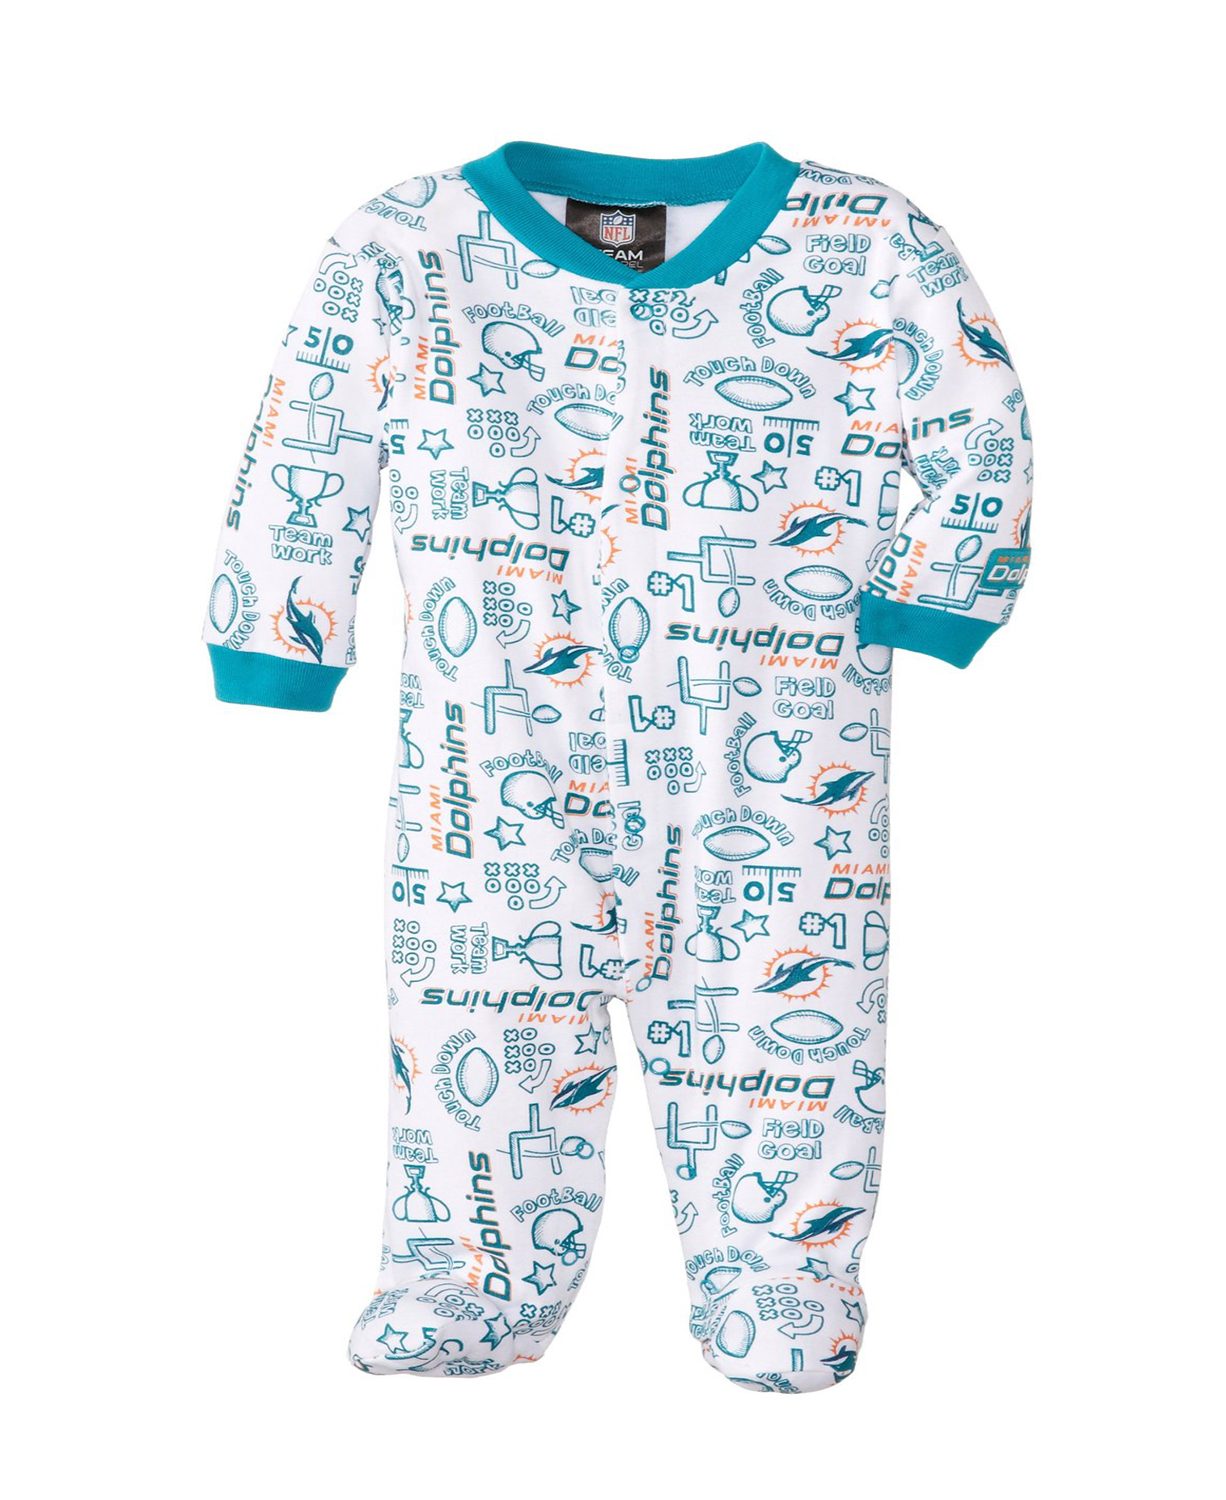 af2e481a8 NFL Miami Dolphins Boy s Sleep N Play Sleepers · Home   Shop   Baby ...